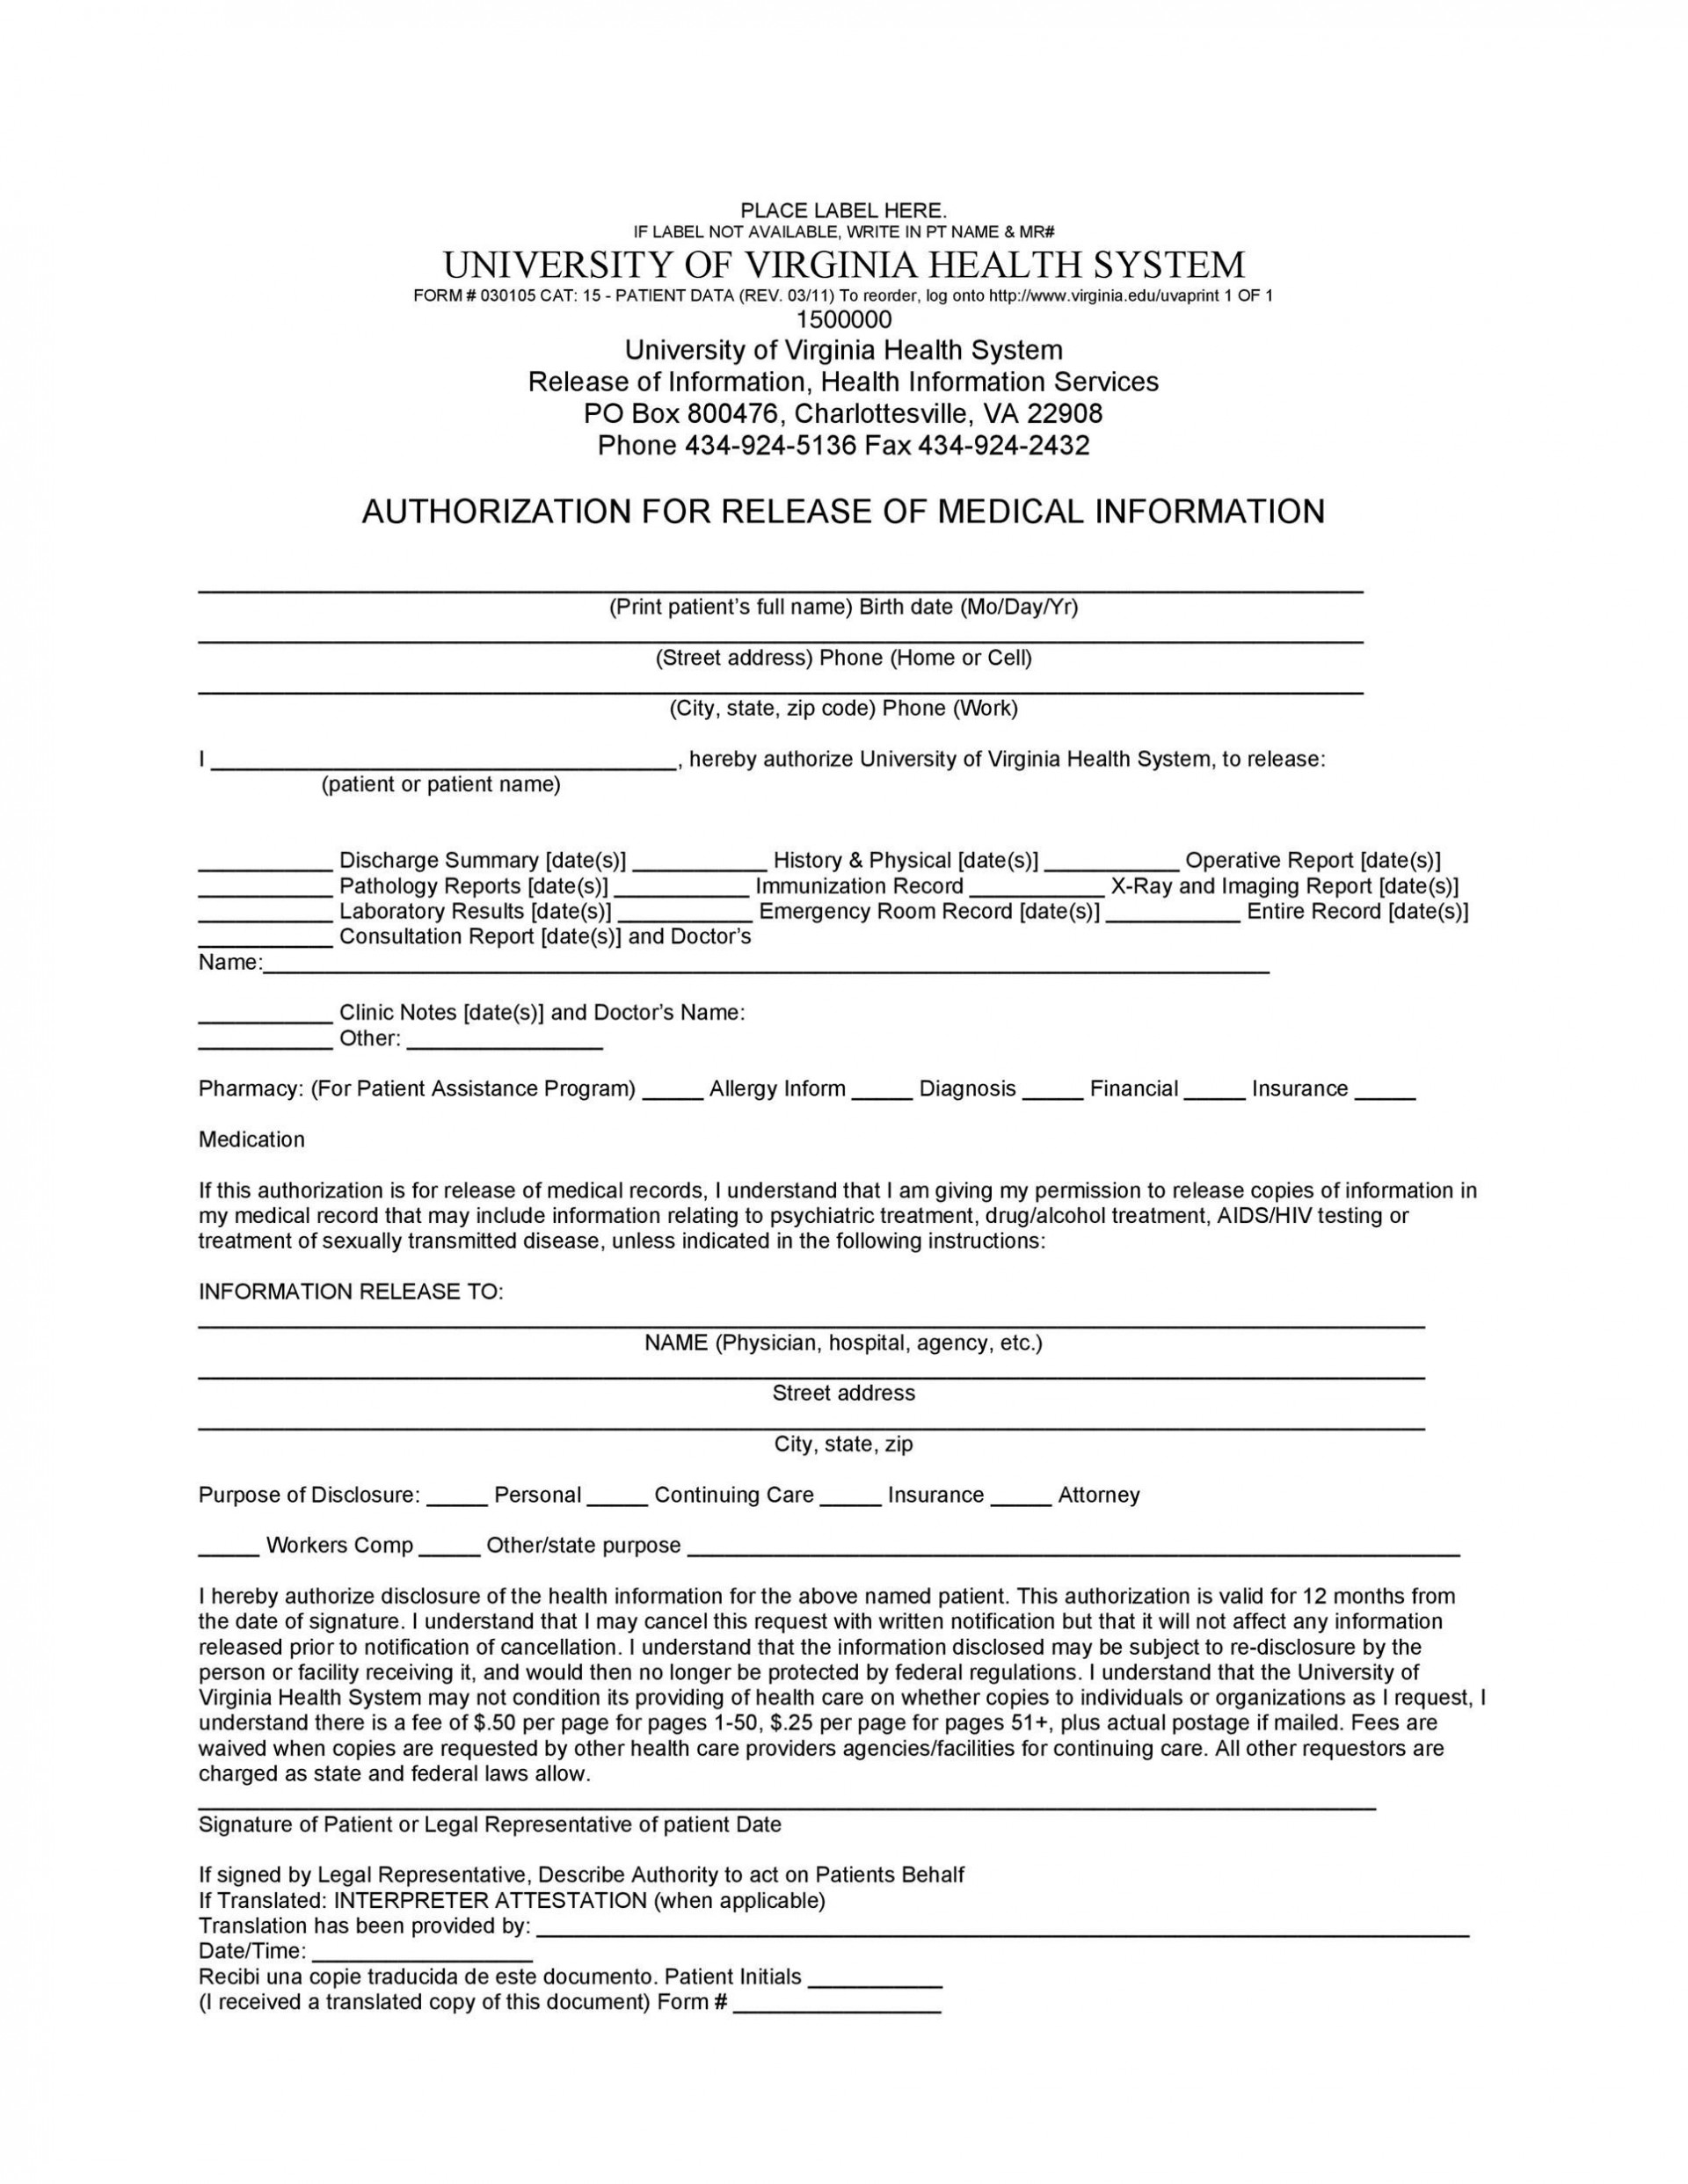 Hipaa Authorization To Release Medical Information Form Template Addictionary